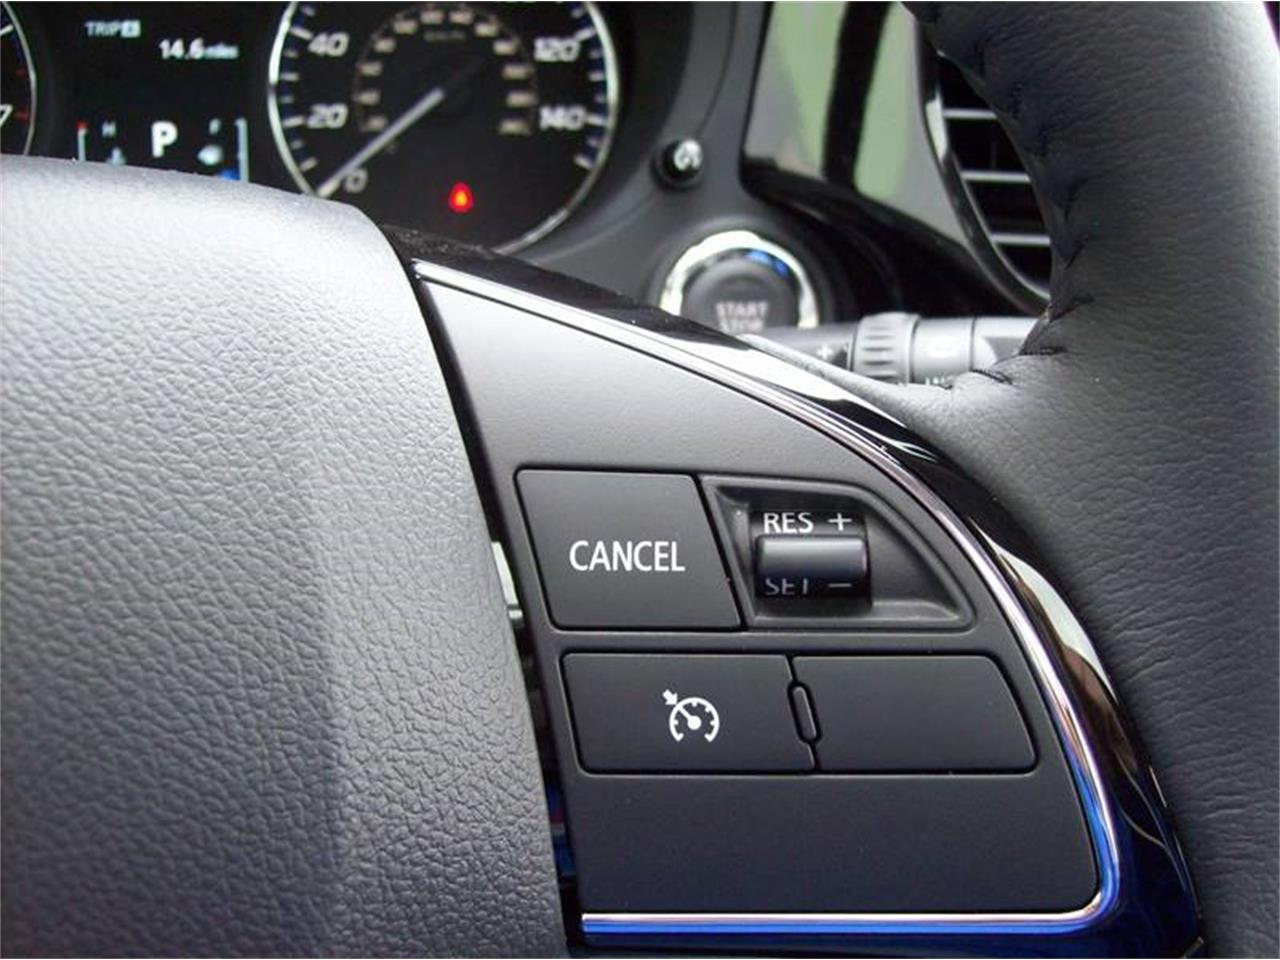 Large Picture of '17 Mitsubishi Outlander located in Michigan Offered by Verhage Mitsubishi - LG8N